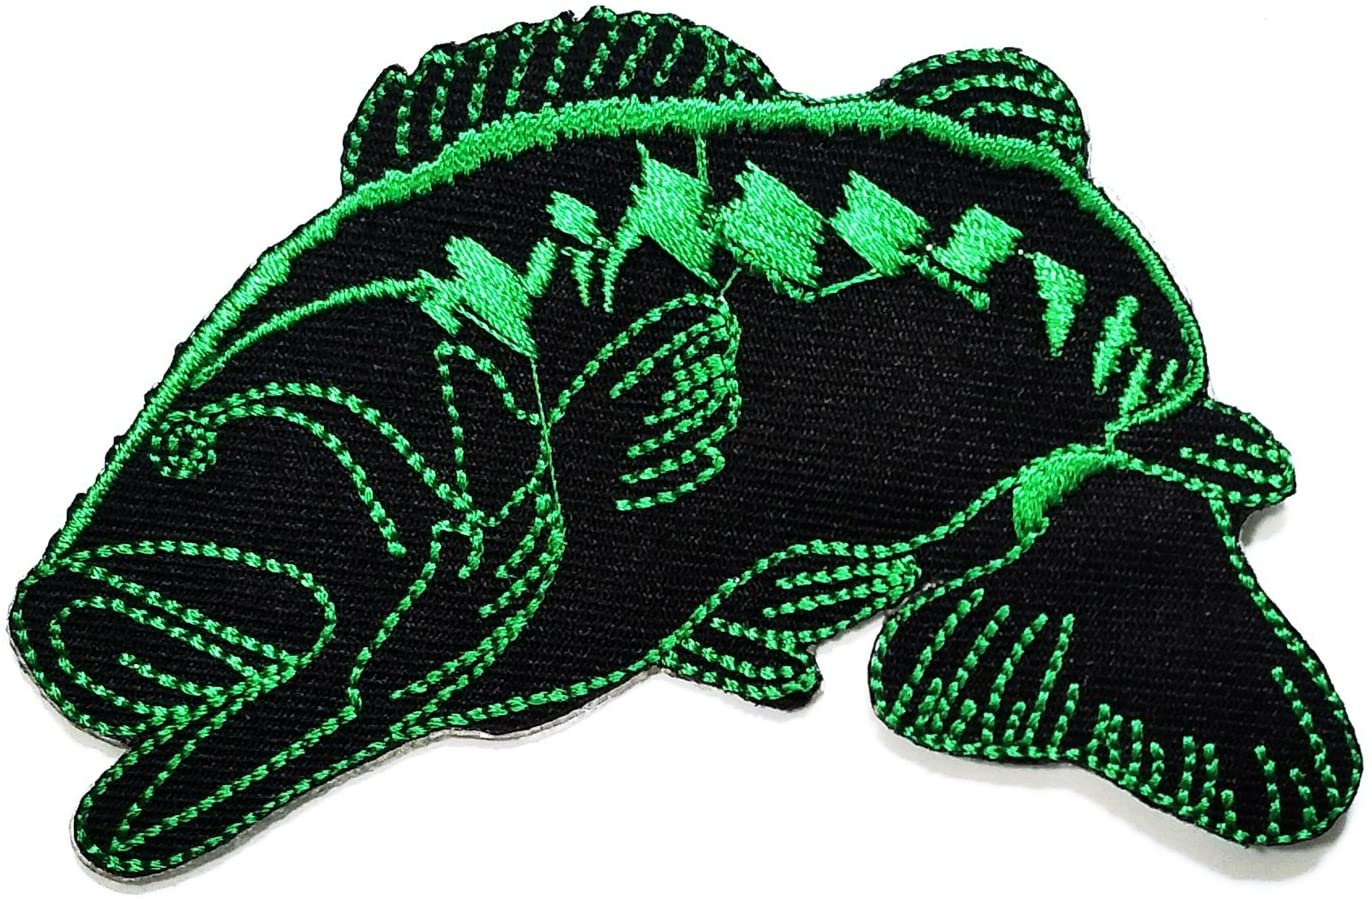 HHO Black Green Bass Fishing Fish Lure Hook Cartoon Kid Patch Embroidered DIY Patches, Cute Applique Sew Iron on Kids Craft Patch for Bags Jackets Jeans Clothes